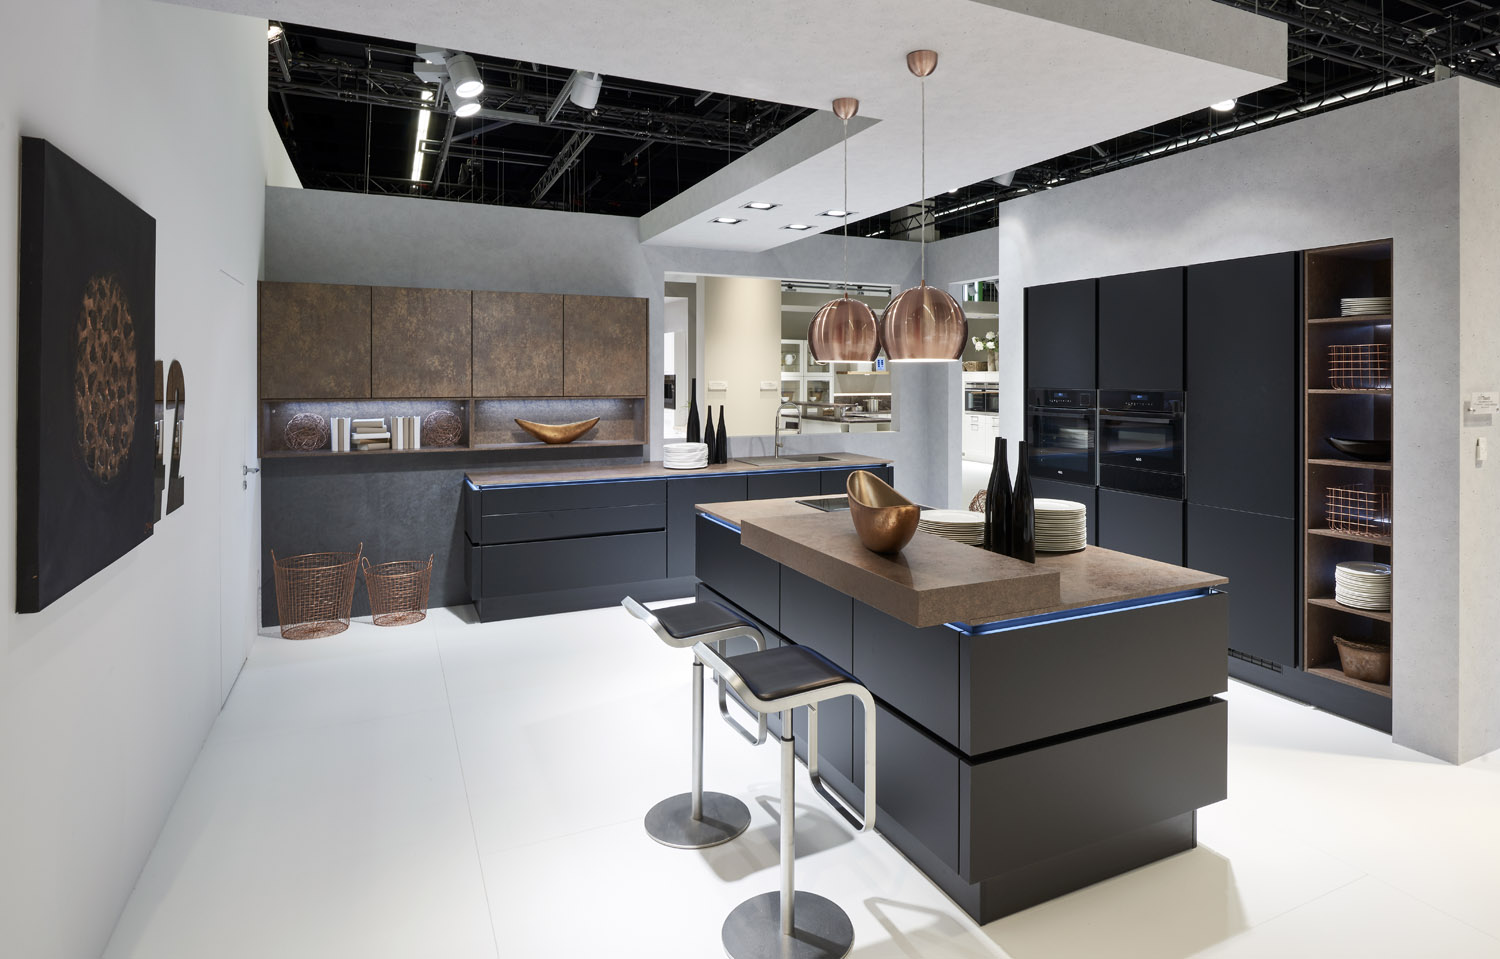 Miami Kitchen Design Center